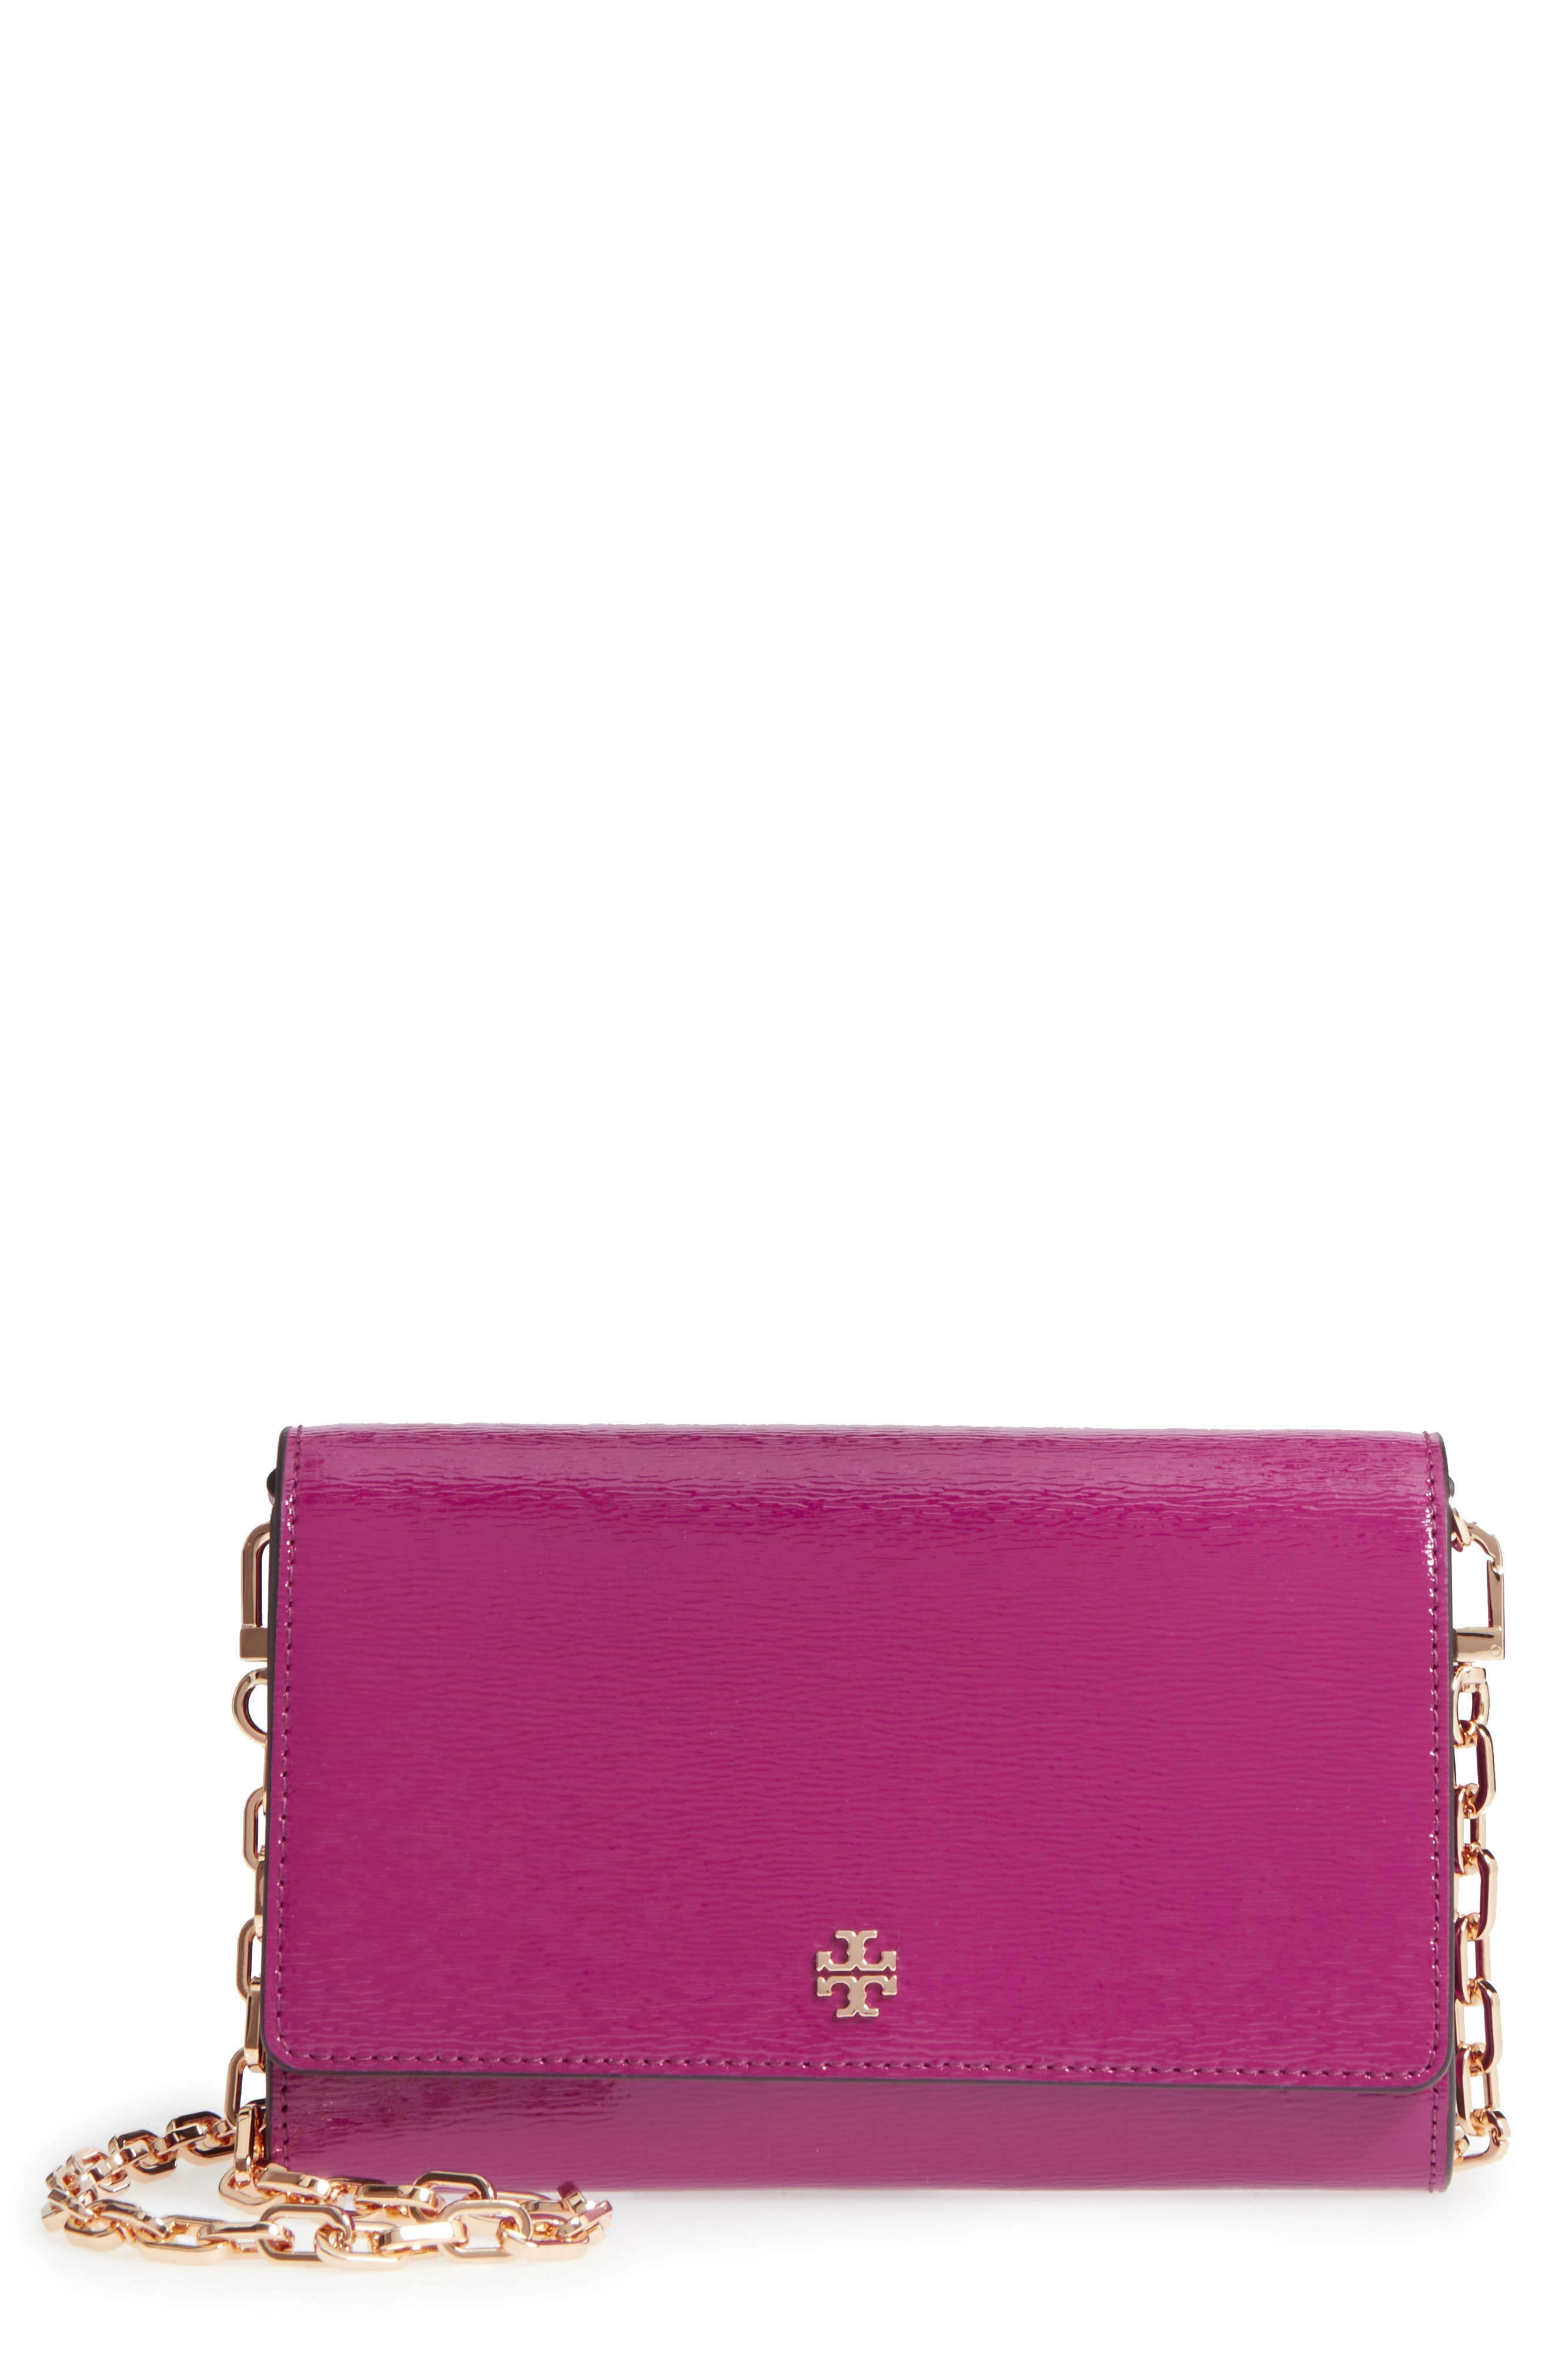 Tory Burch Robinson Patent Leather Wallet on a Chain